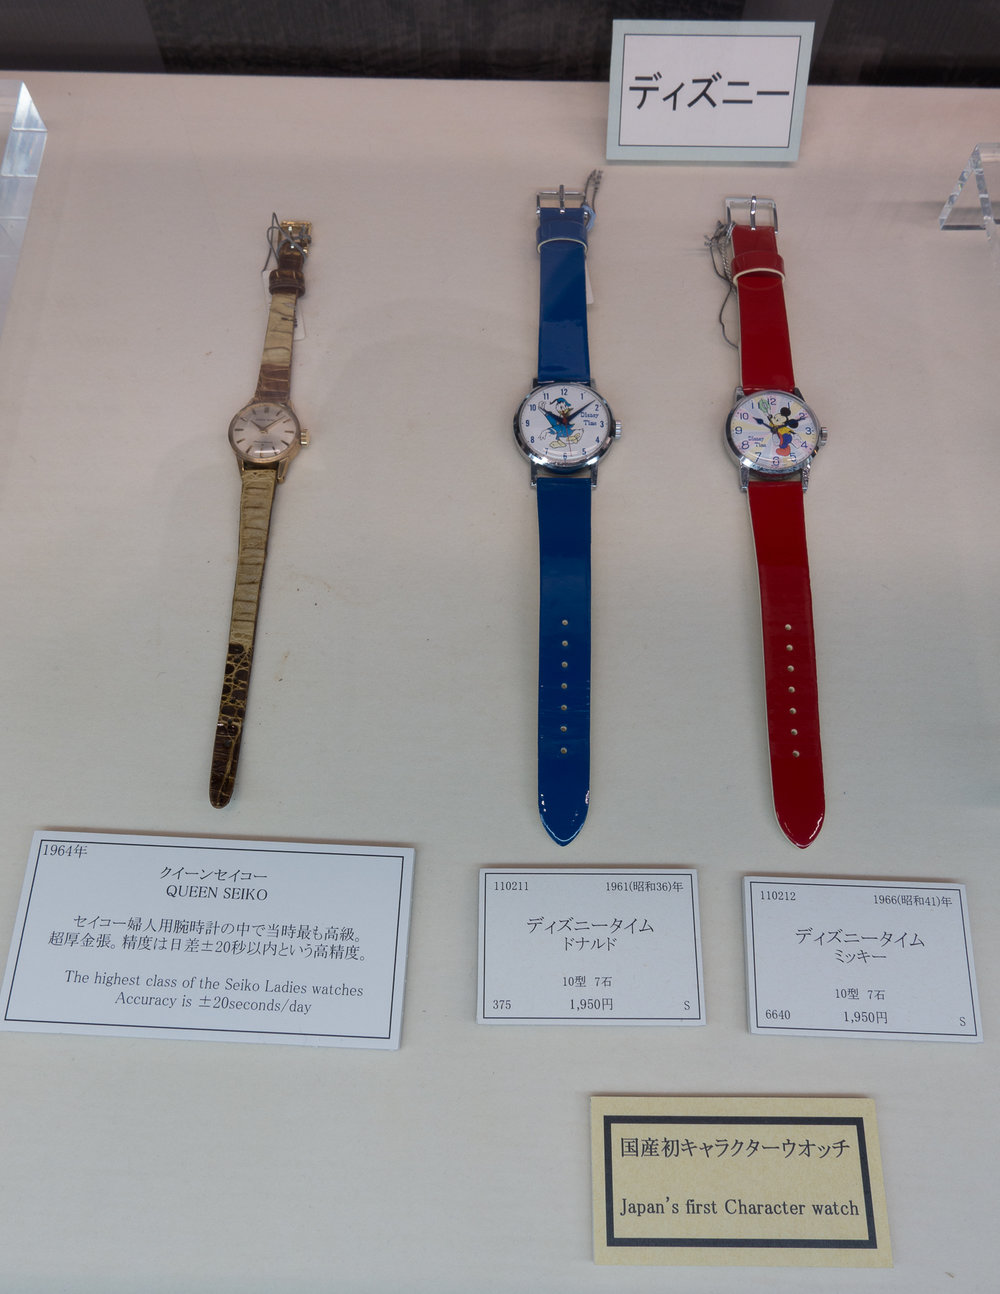 Queen Seiko & Character Watches